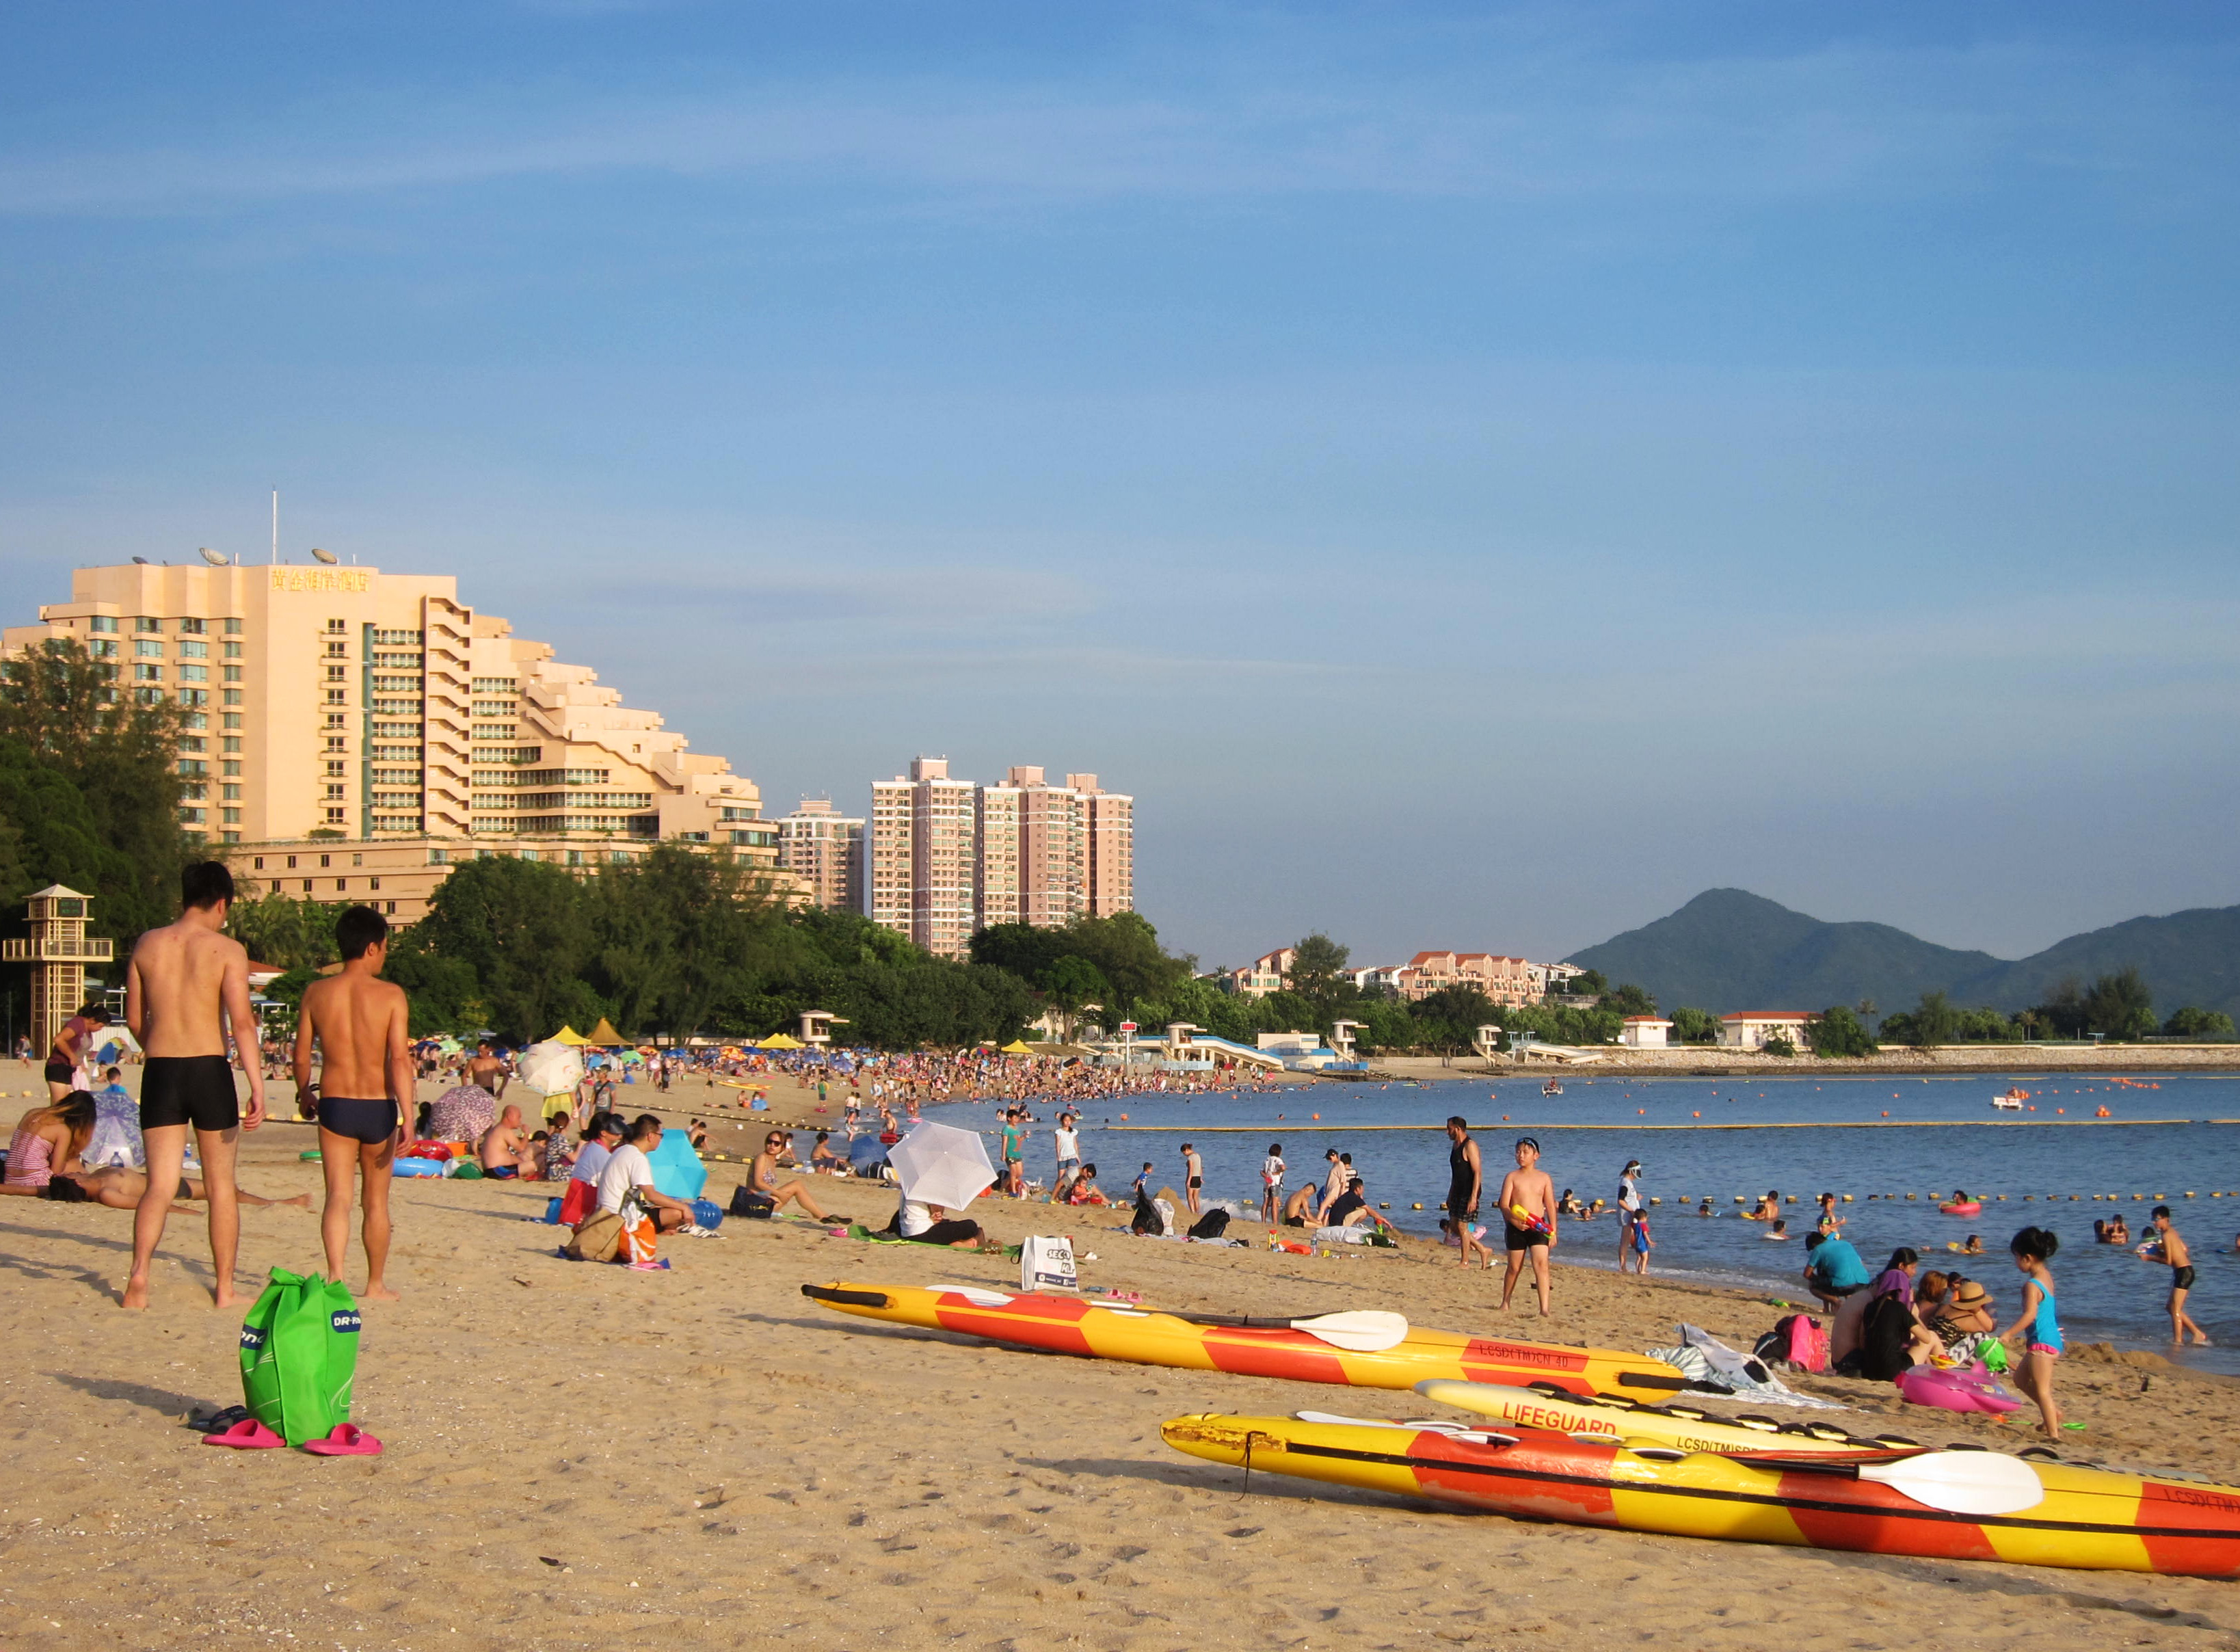 golden beach hong kong wikipedia